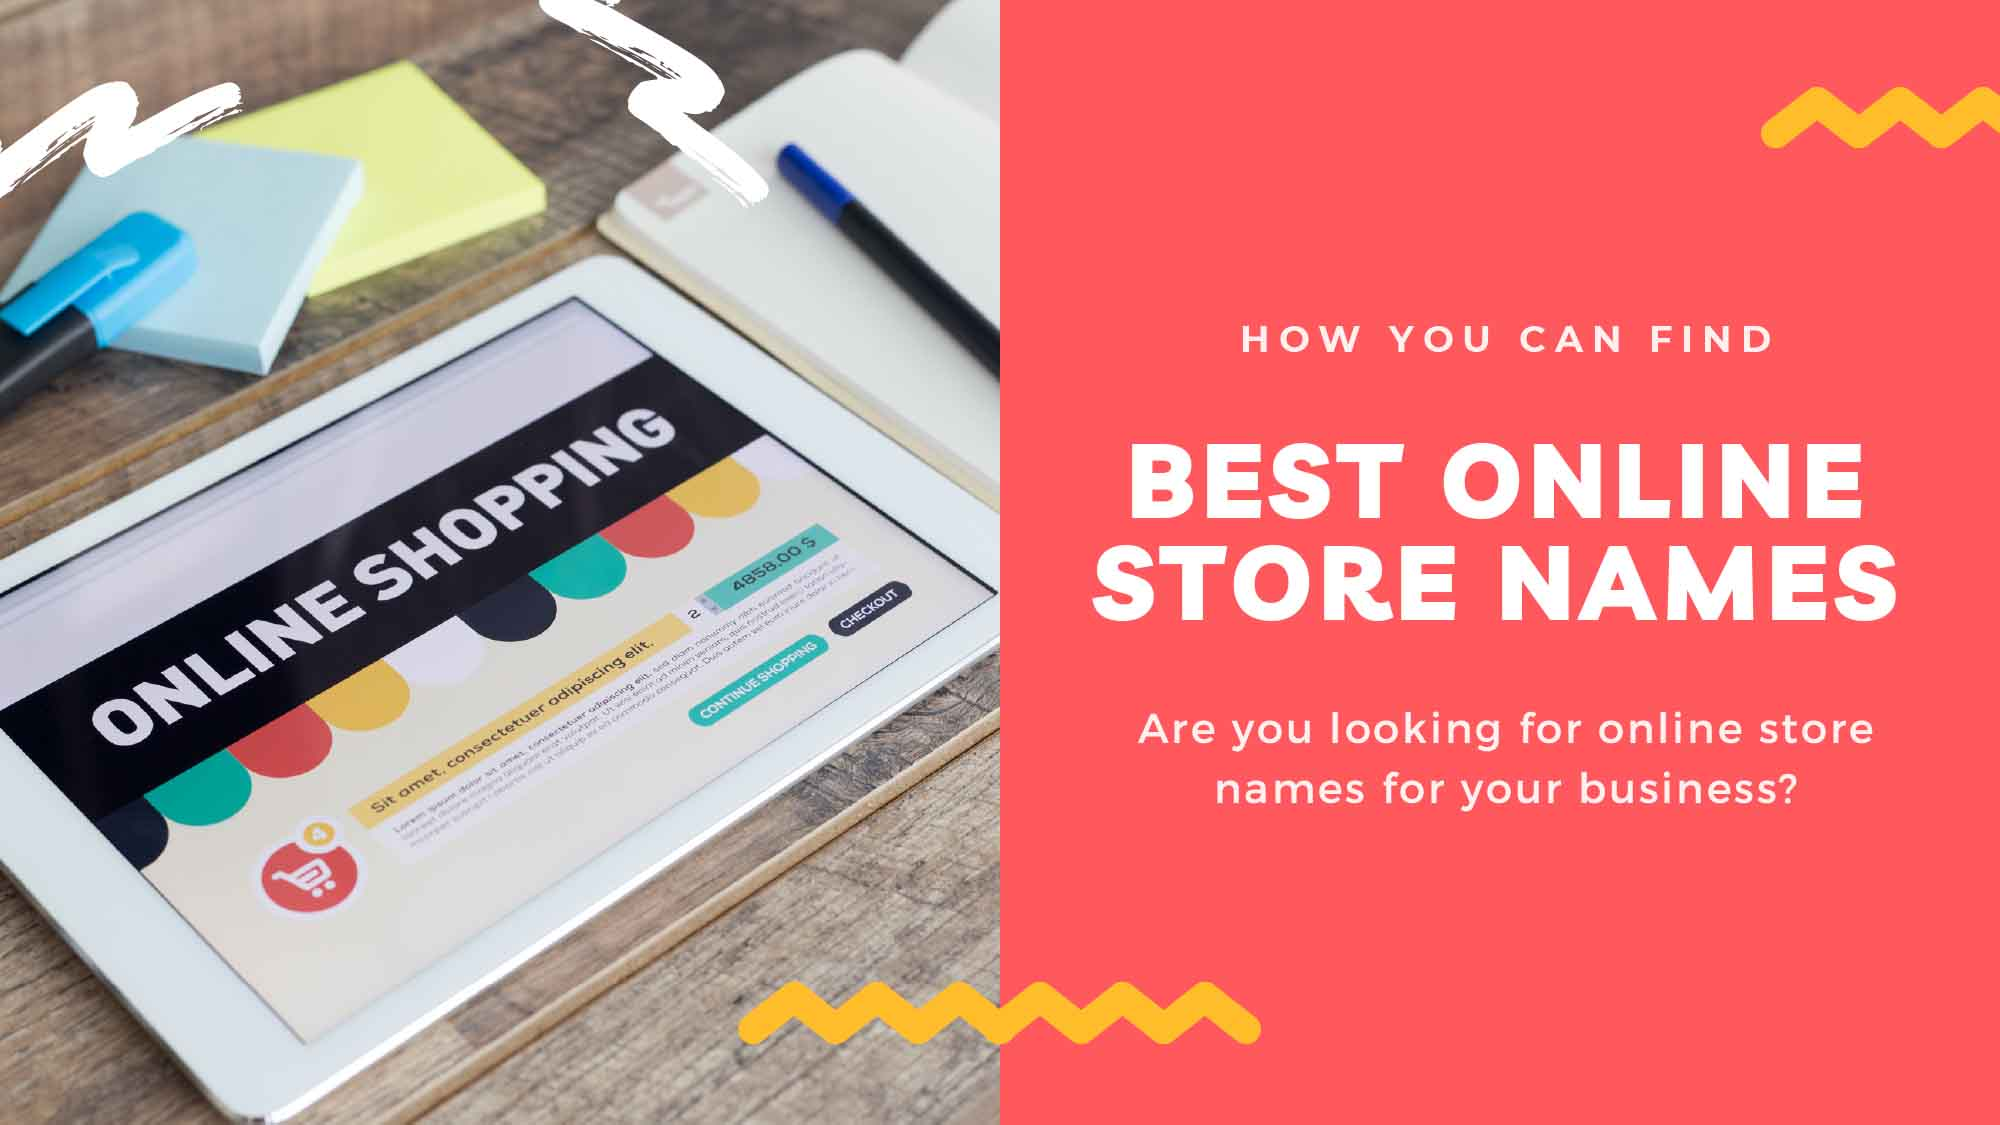 Here Is How You Can Find The Best Online Store Names!